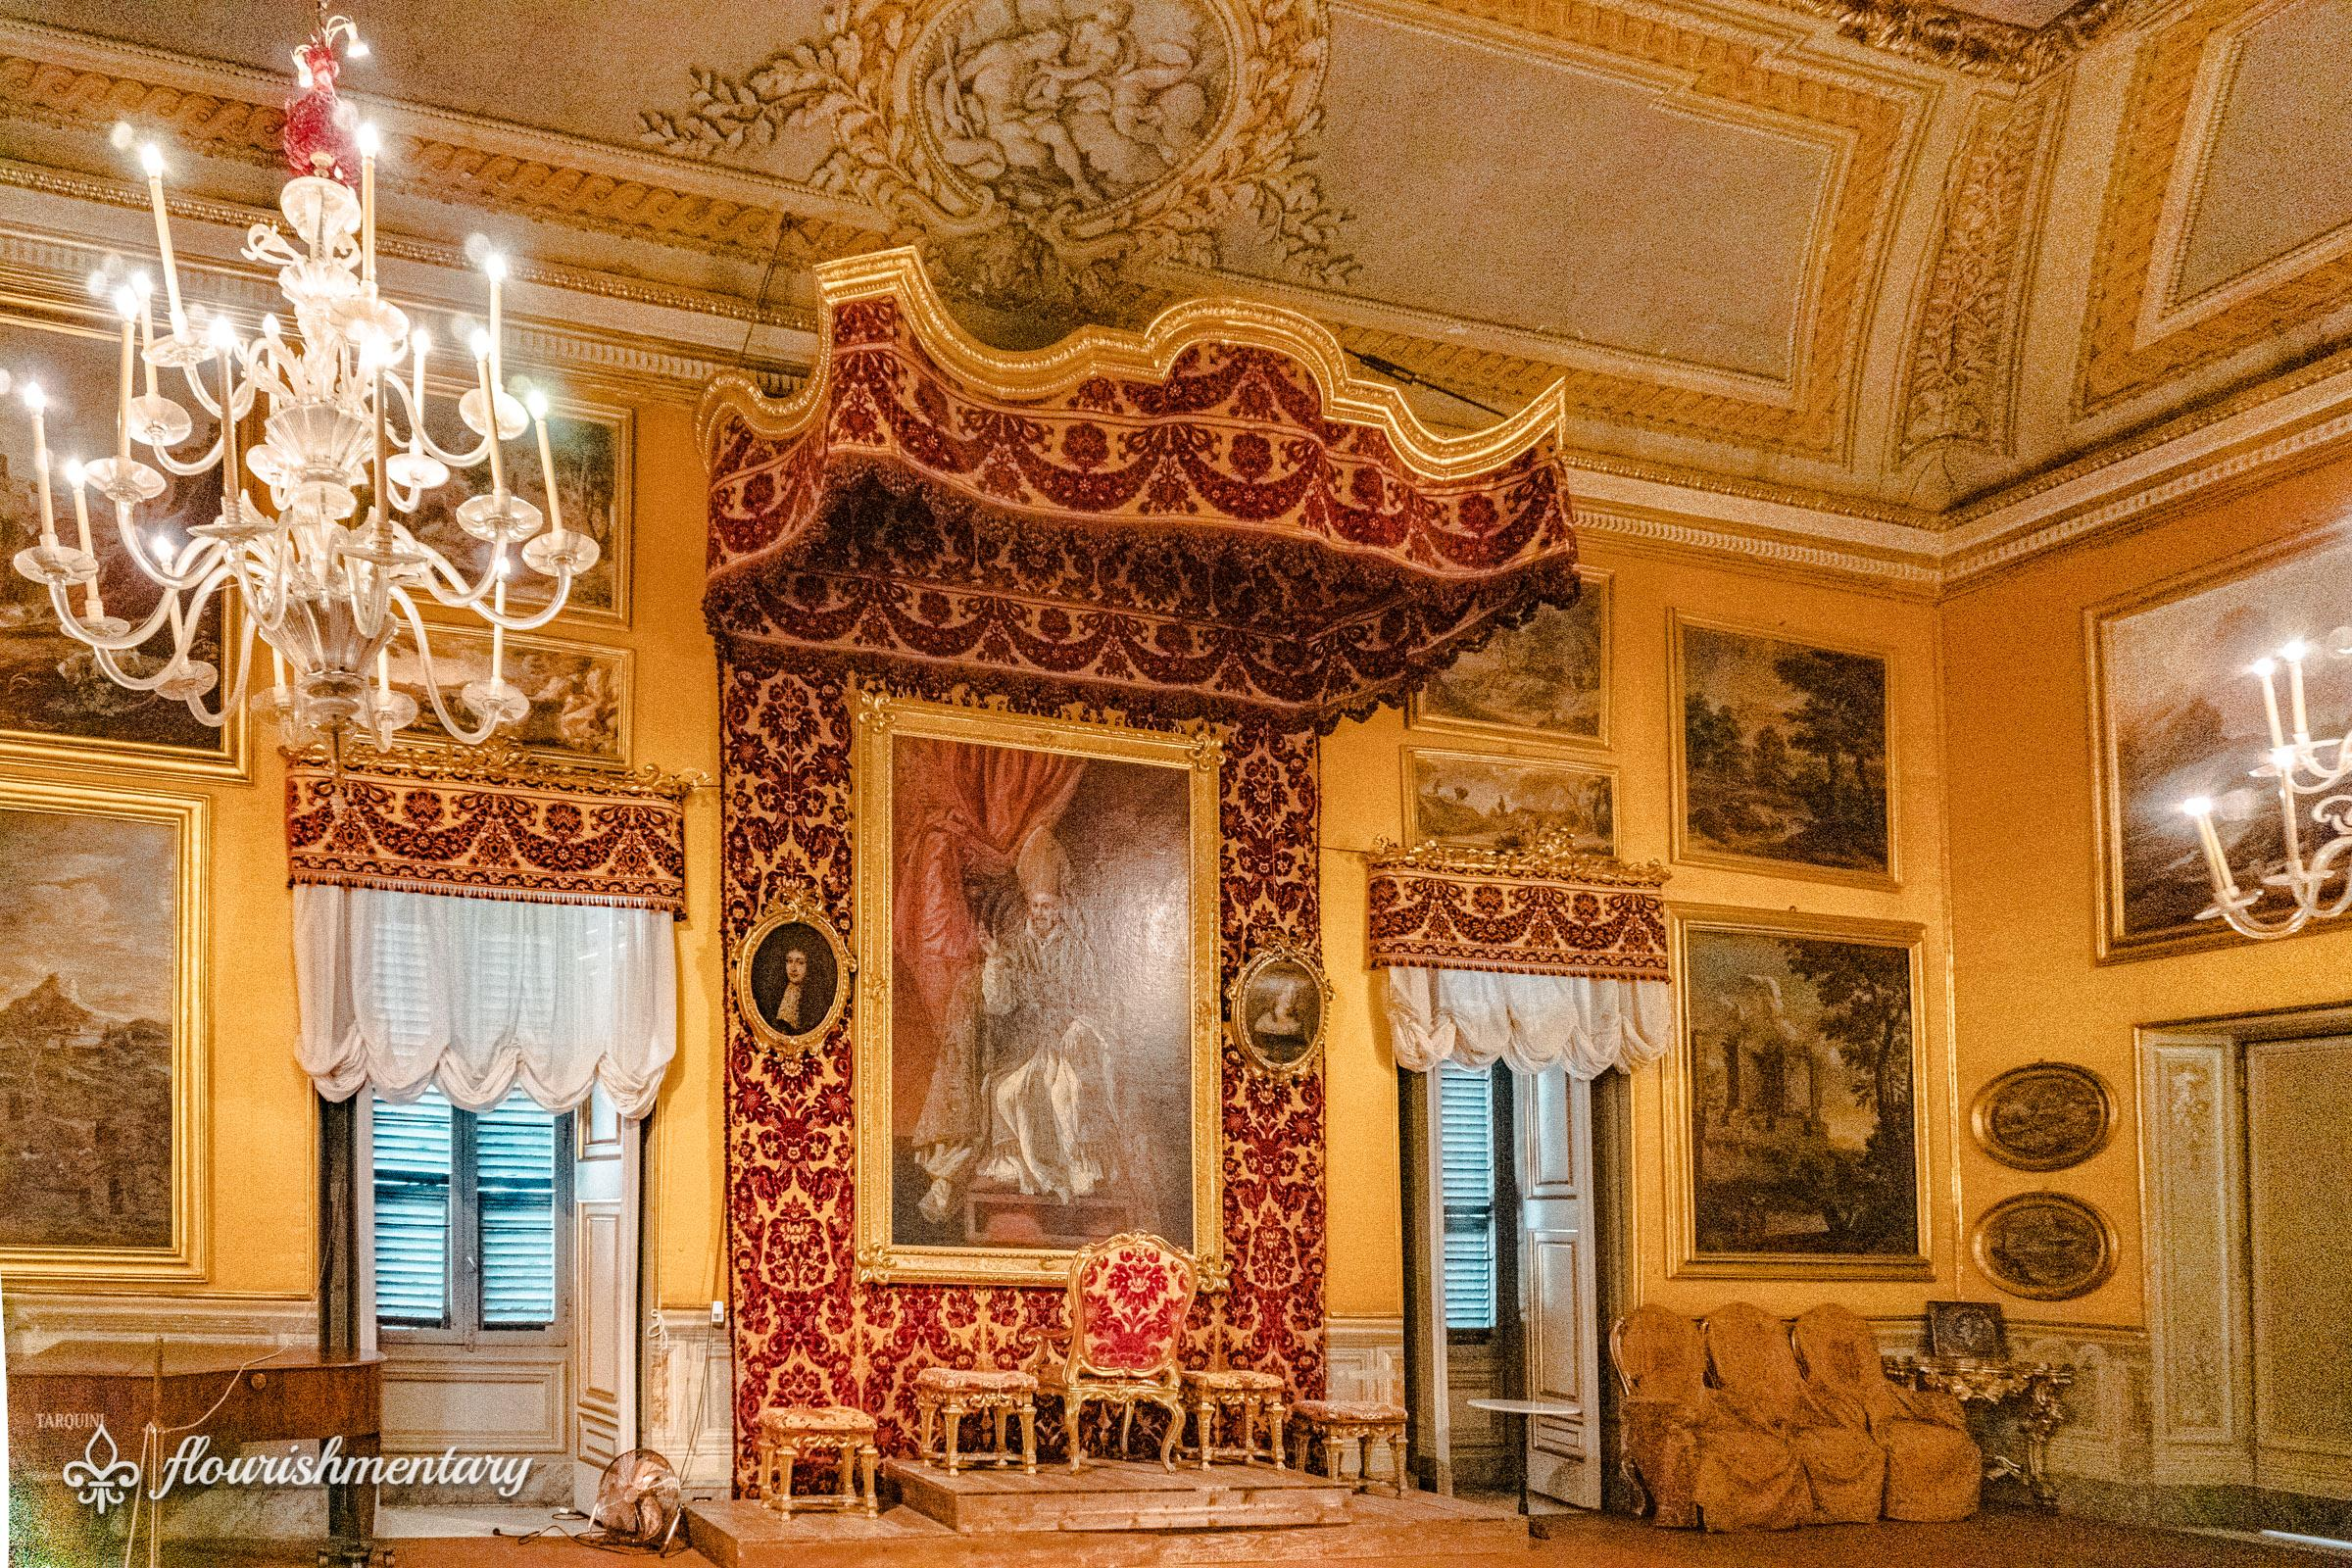 The Throne room Galleria Doria Pamphilj